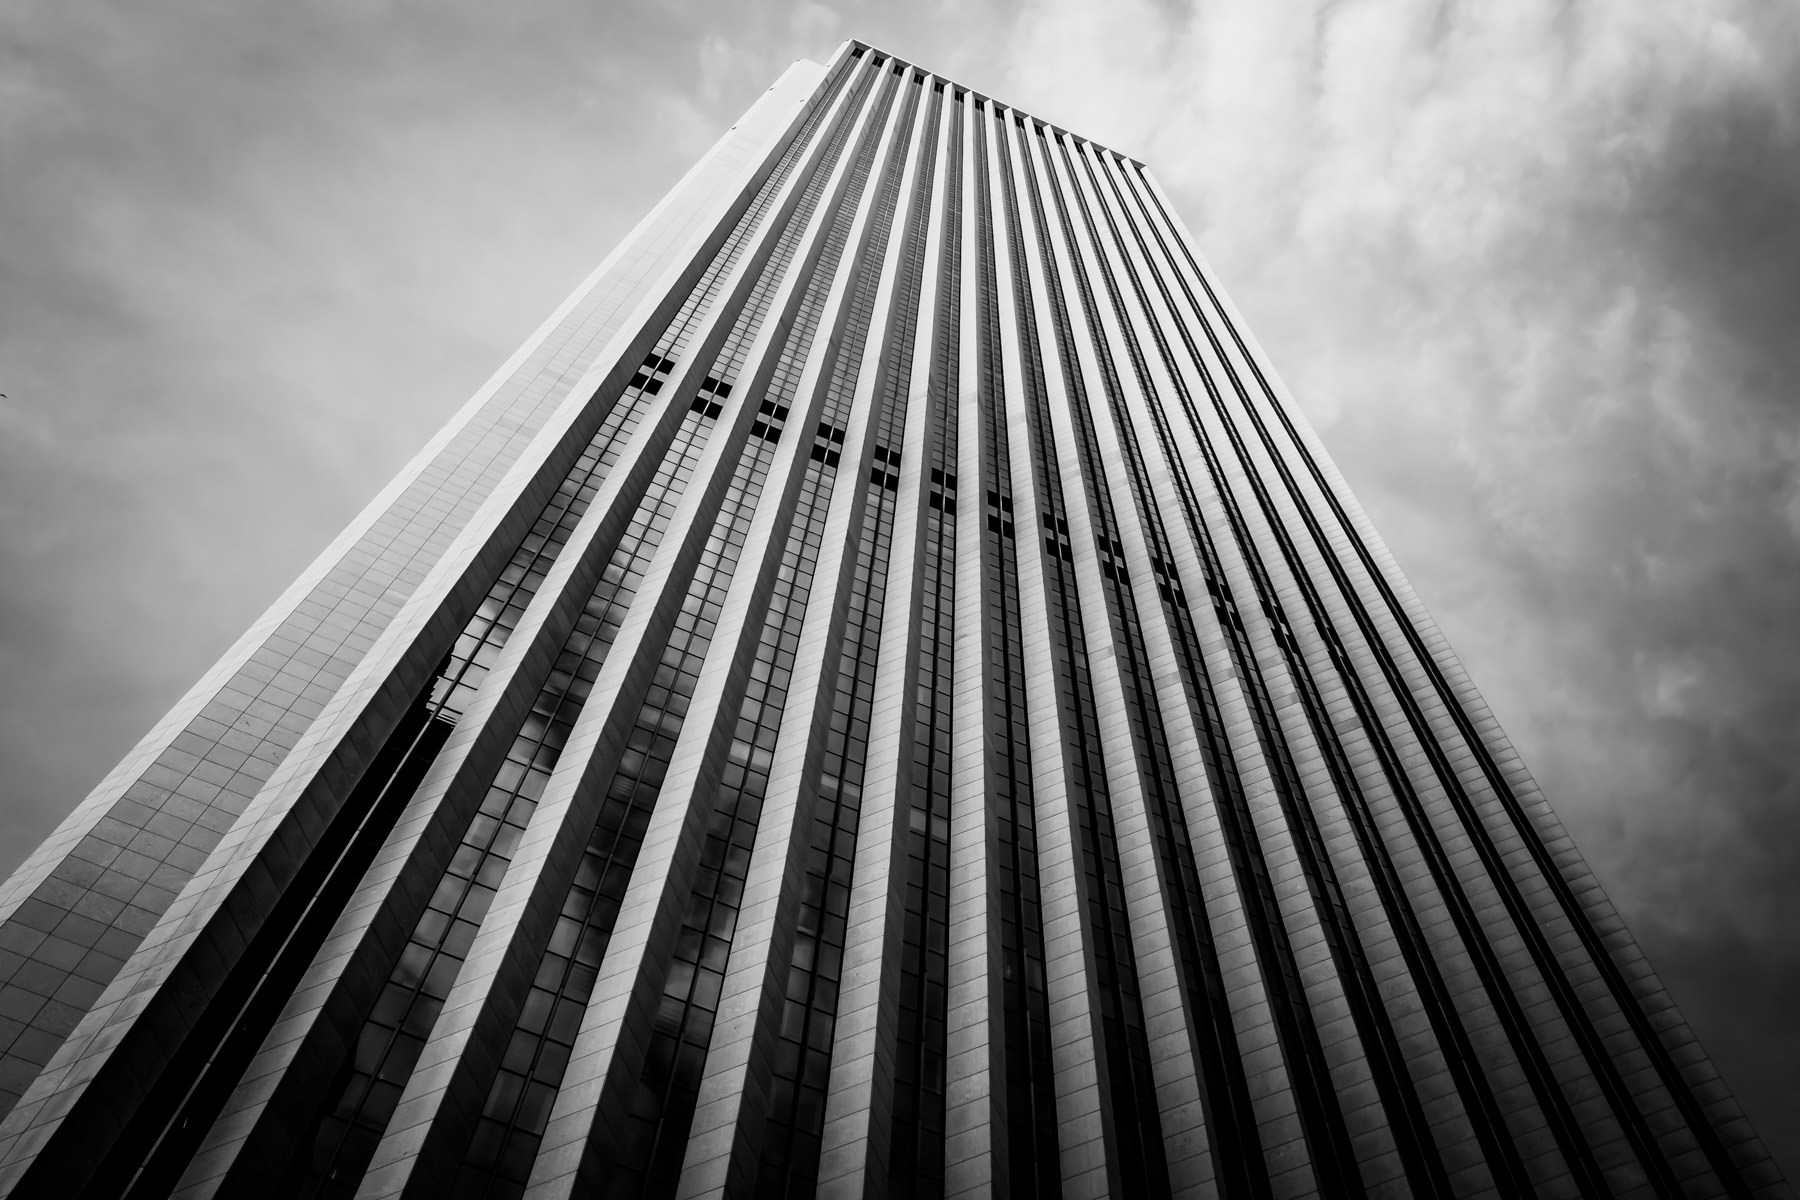 Chicago's third-tallest skyscraper, the 83-story Aon Center, rises into the sky.